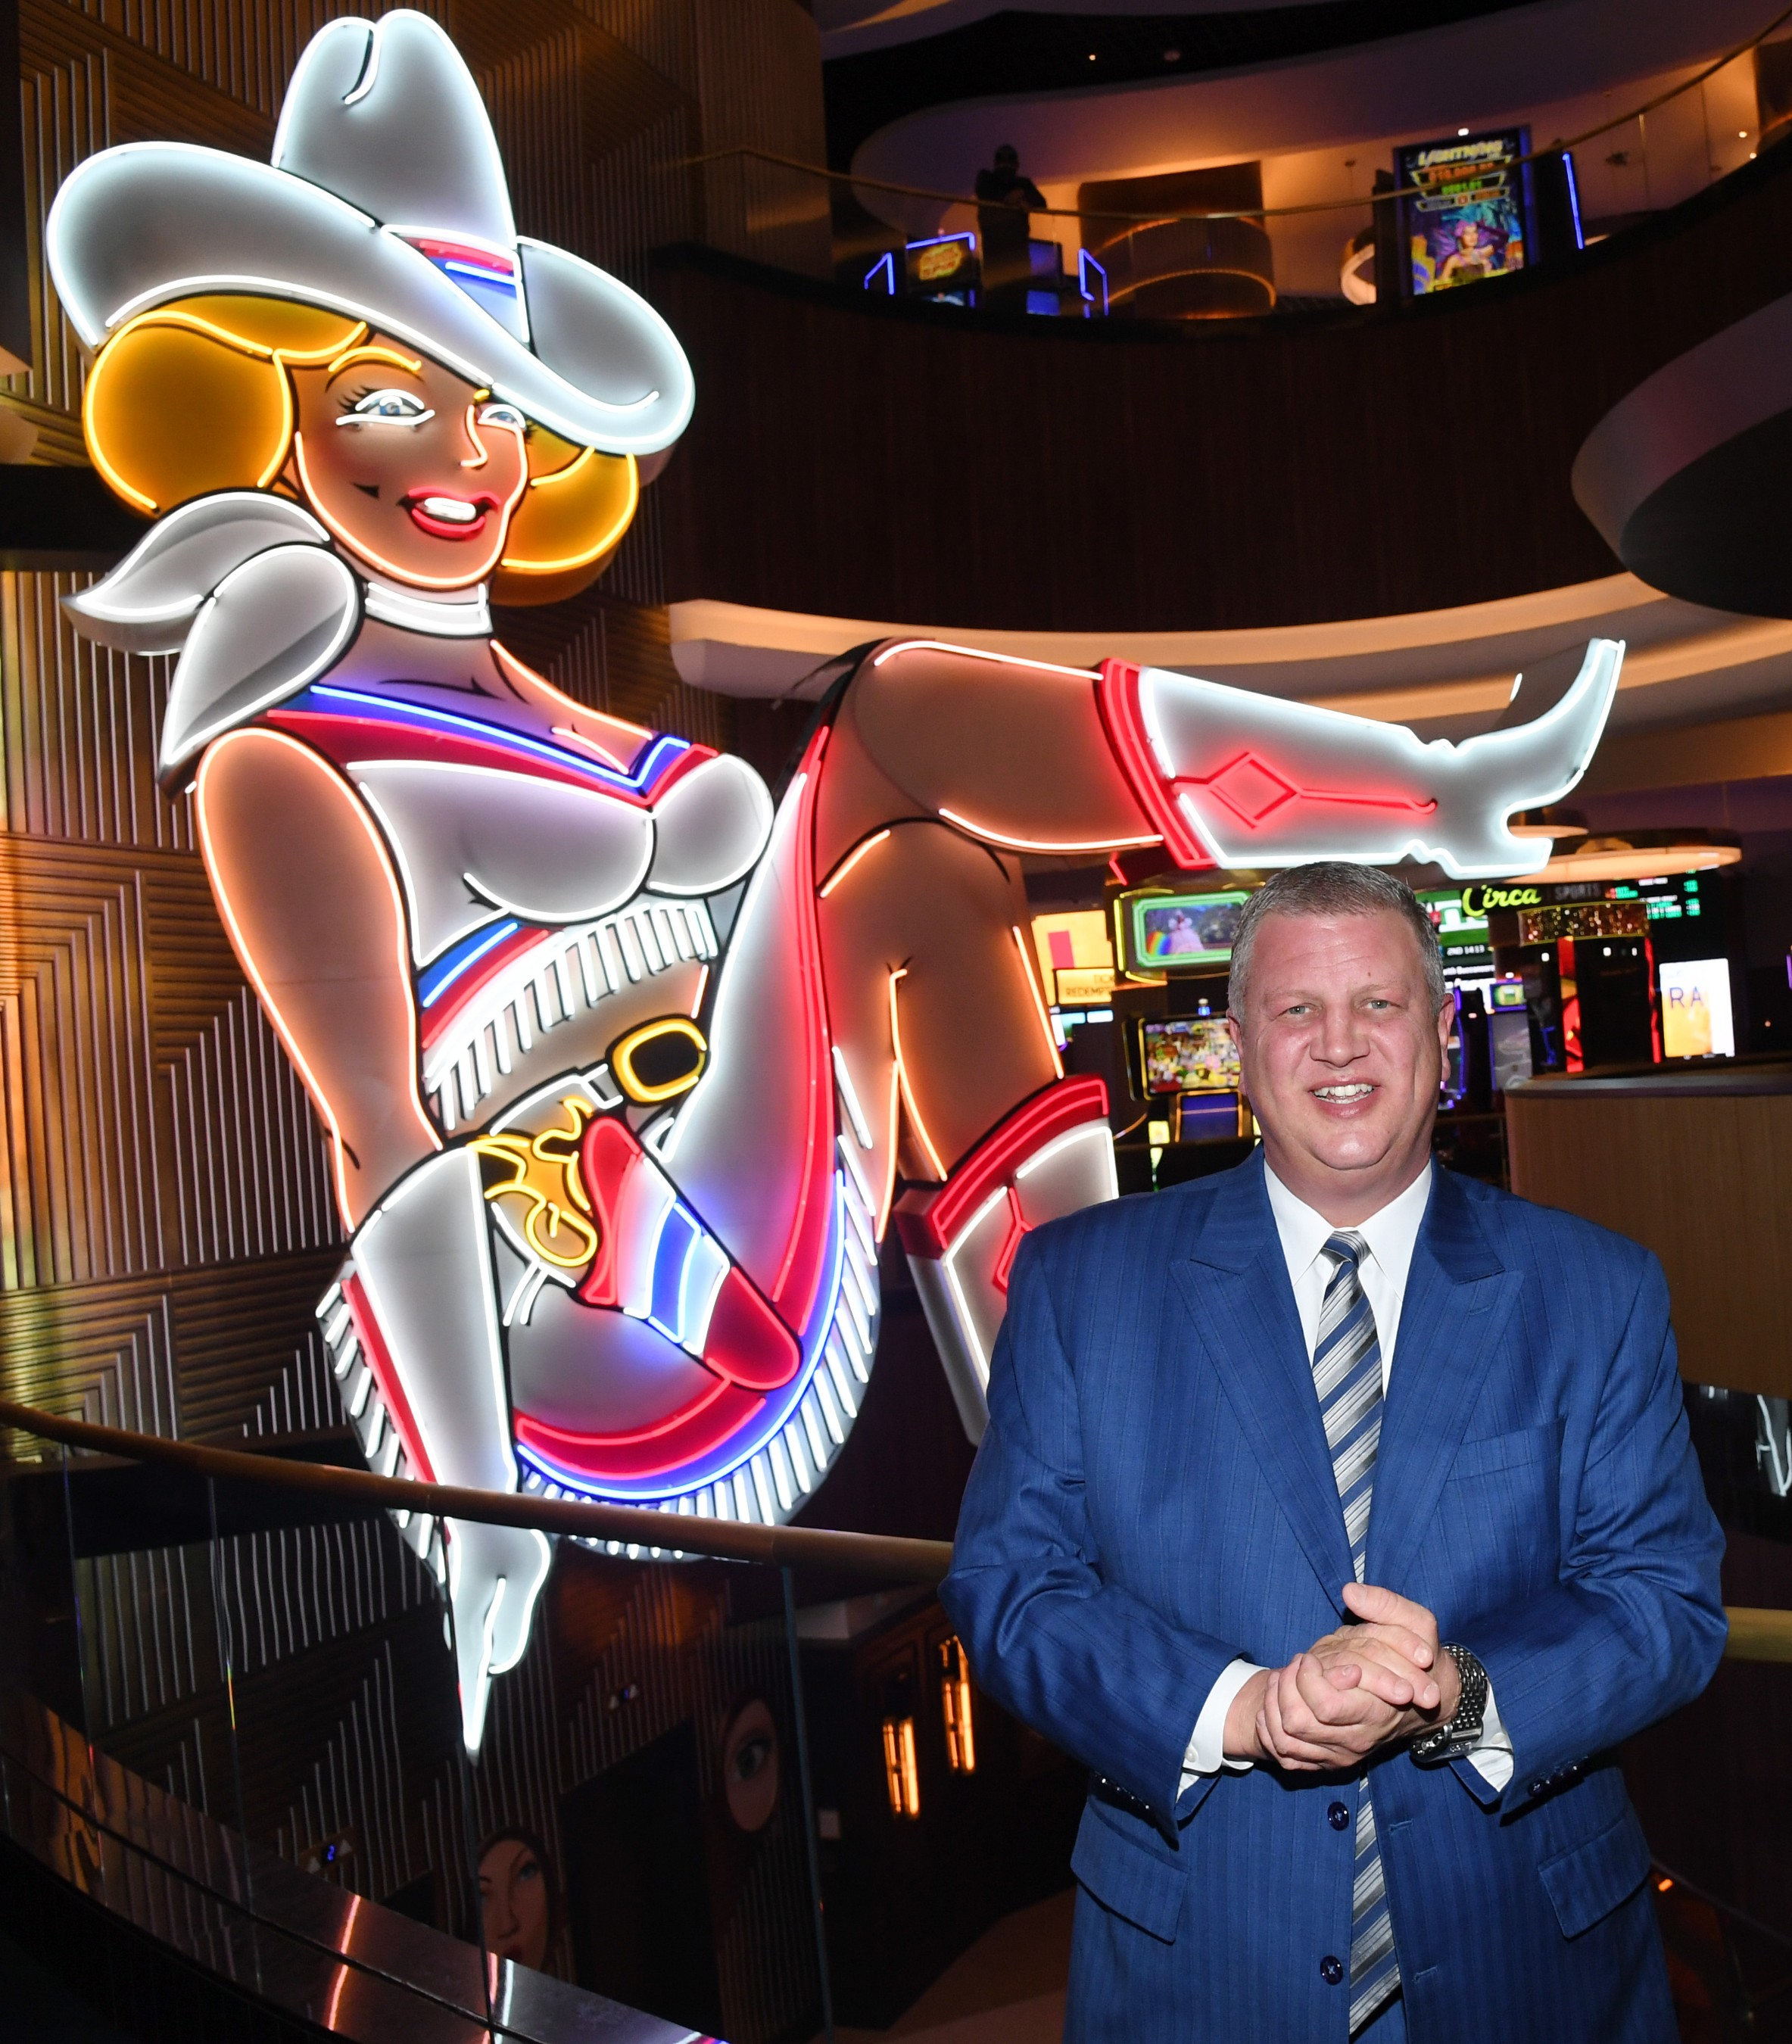 With the goal of paying homage to Vegas history, Circa CEO Derek Stevens acquired and restored the iconic Vegas Vickie sign, which now sits in Circa's lobby.